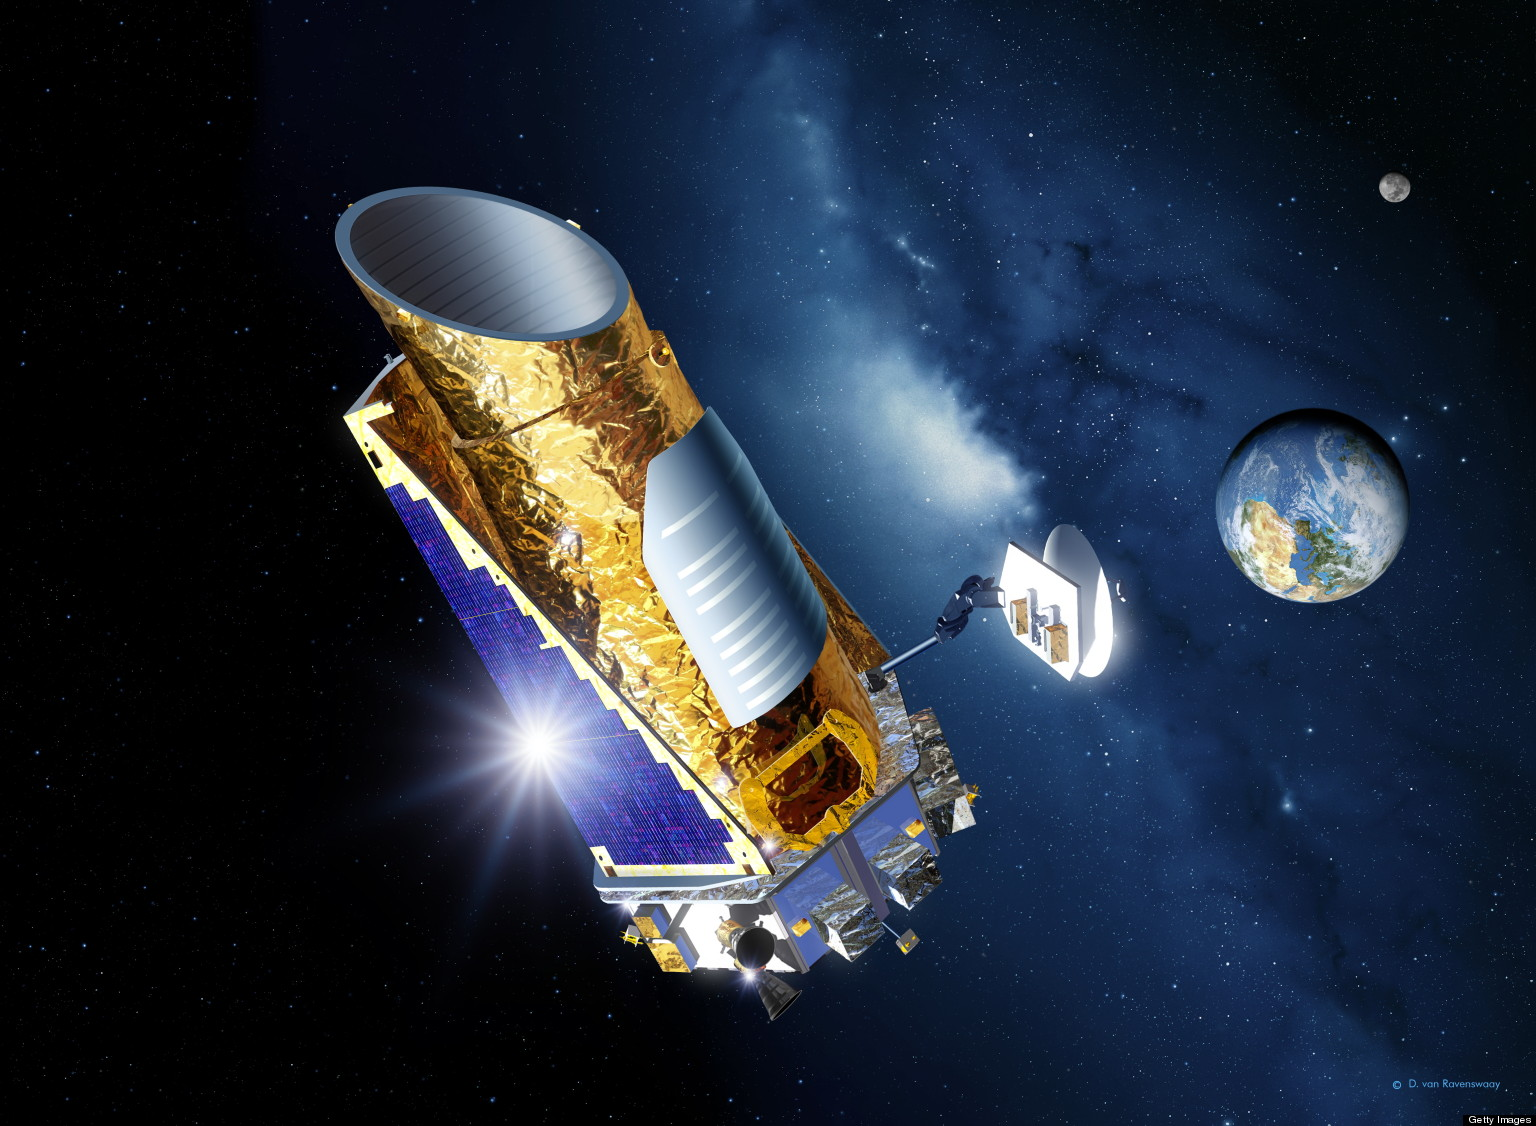 NASAs Kepler discovers 715 new planets many of which are